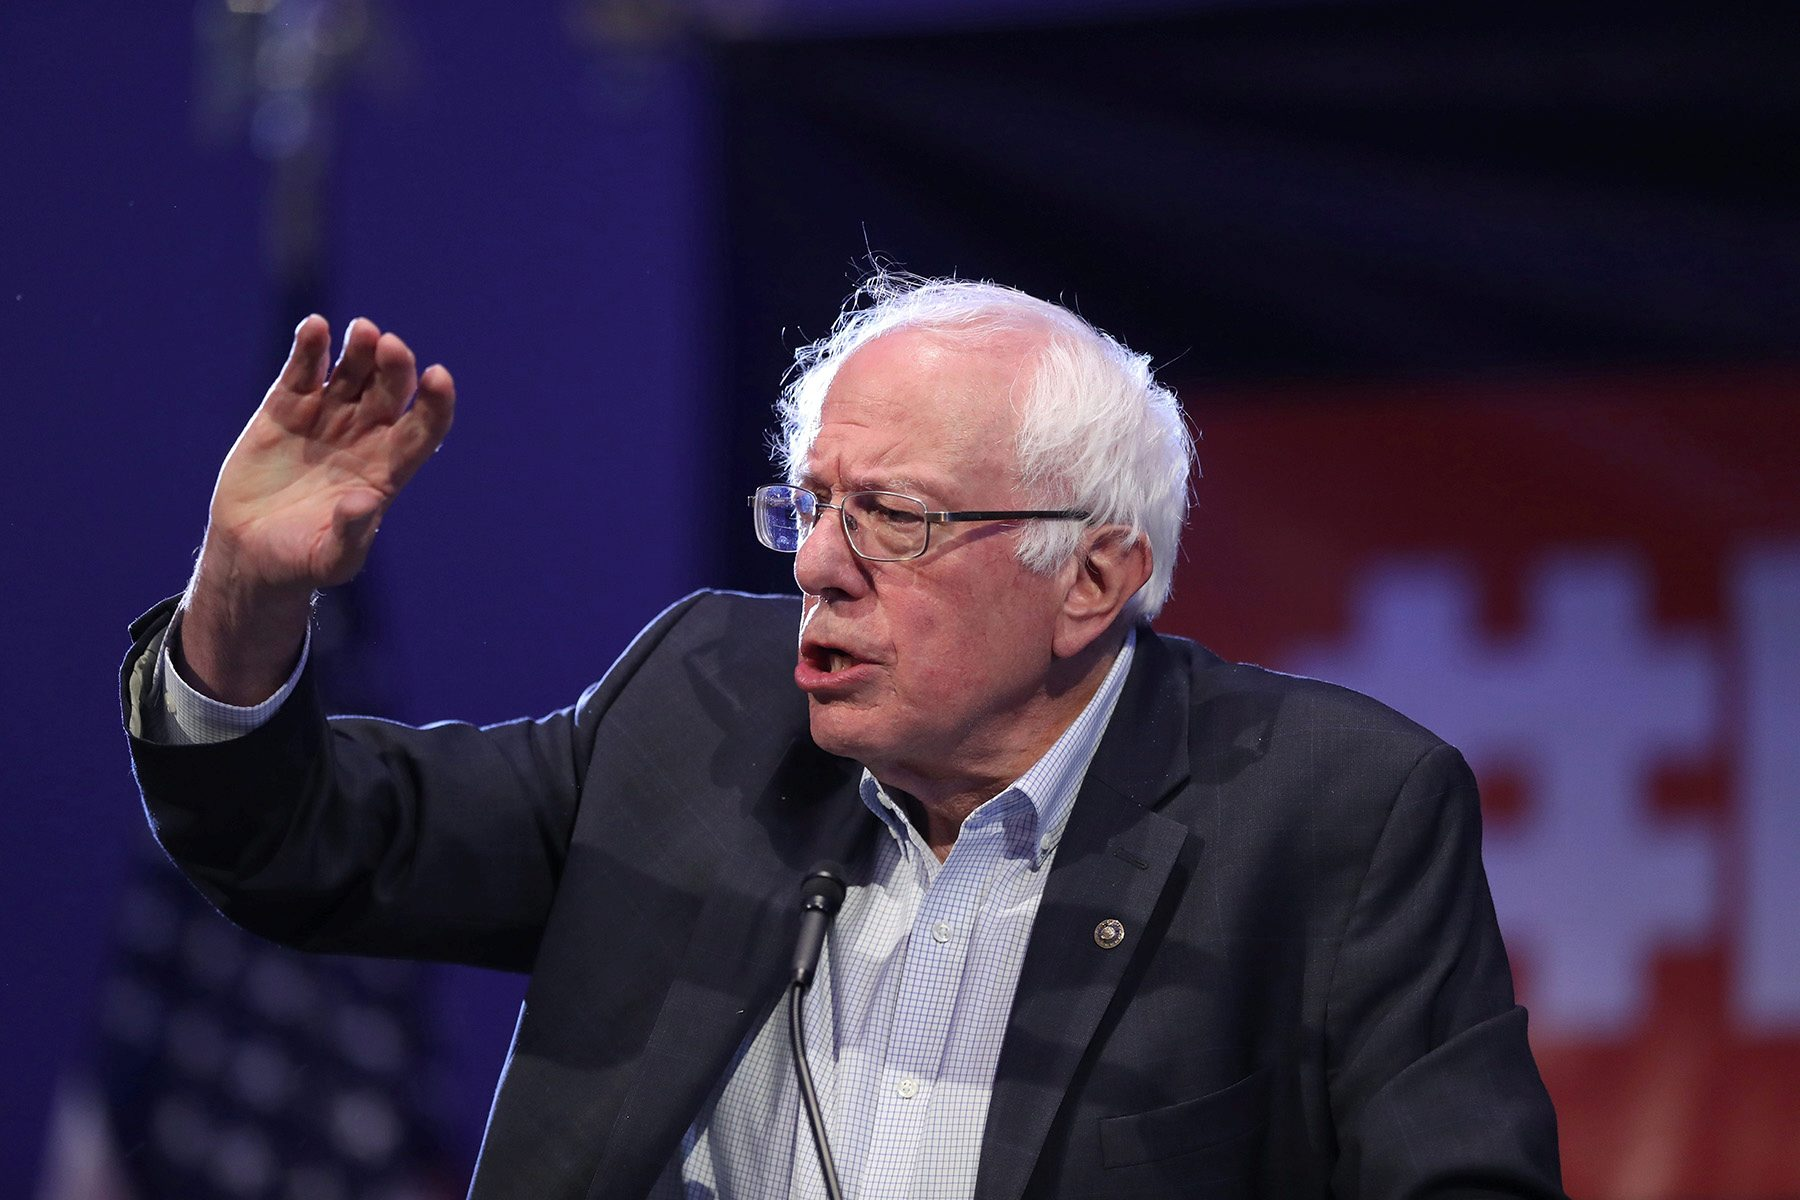 Bernie Sanders to propose paying off all student debt with taxes on Wall Street